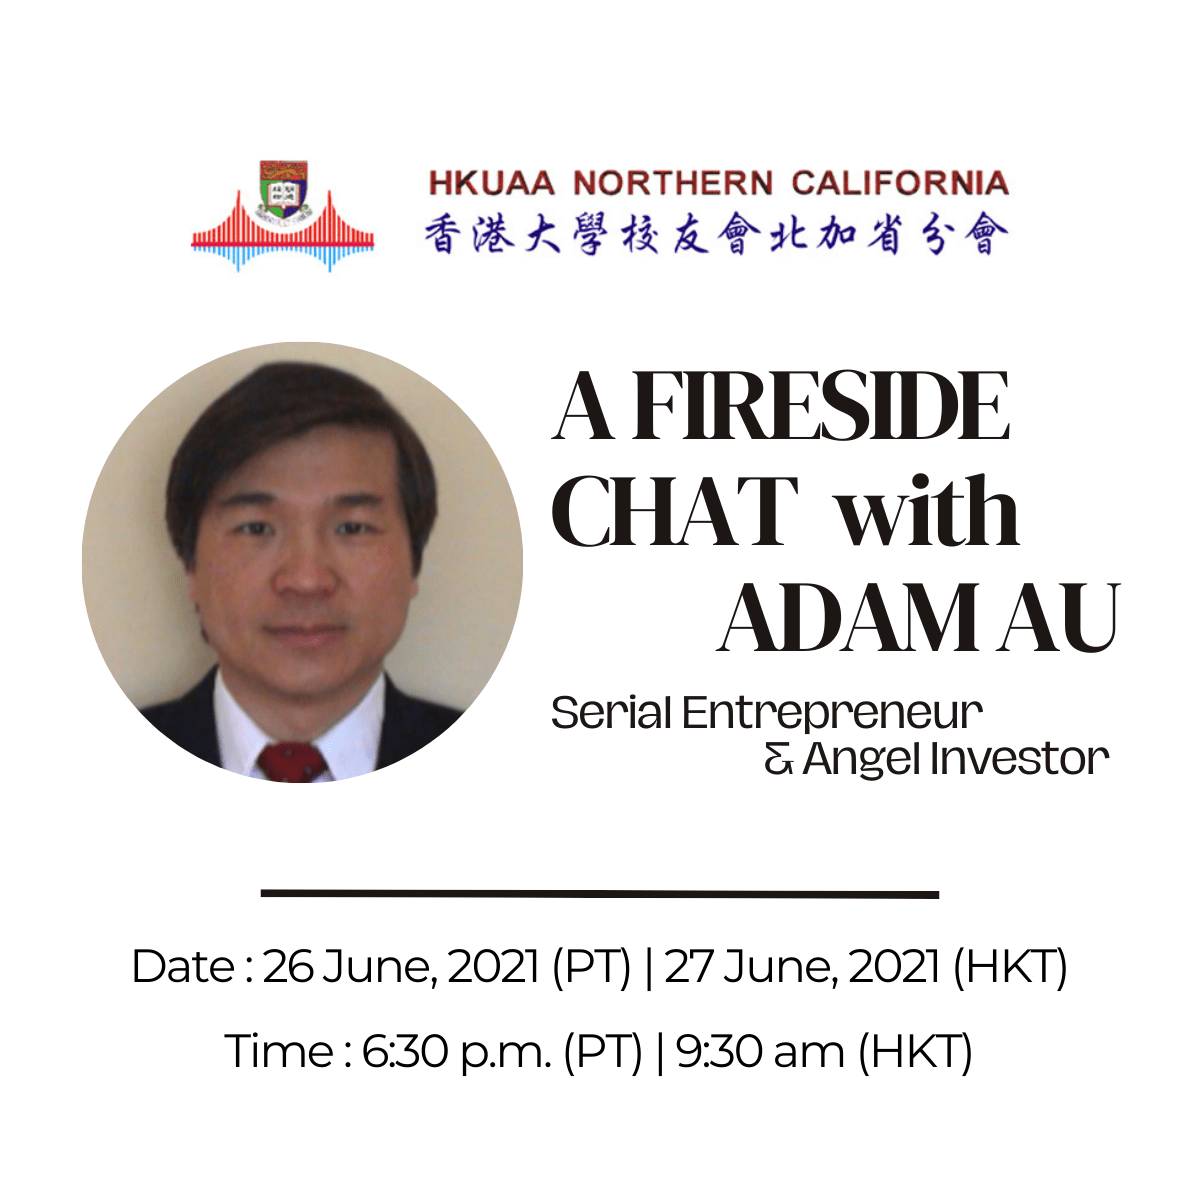 A Fireside Chat with Adam Au | HKUAA Northern California